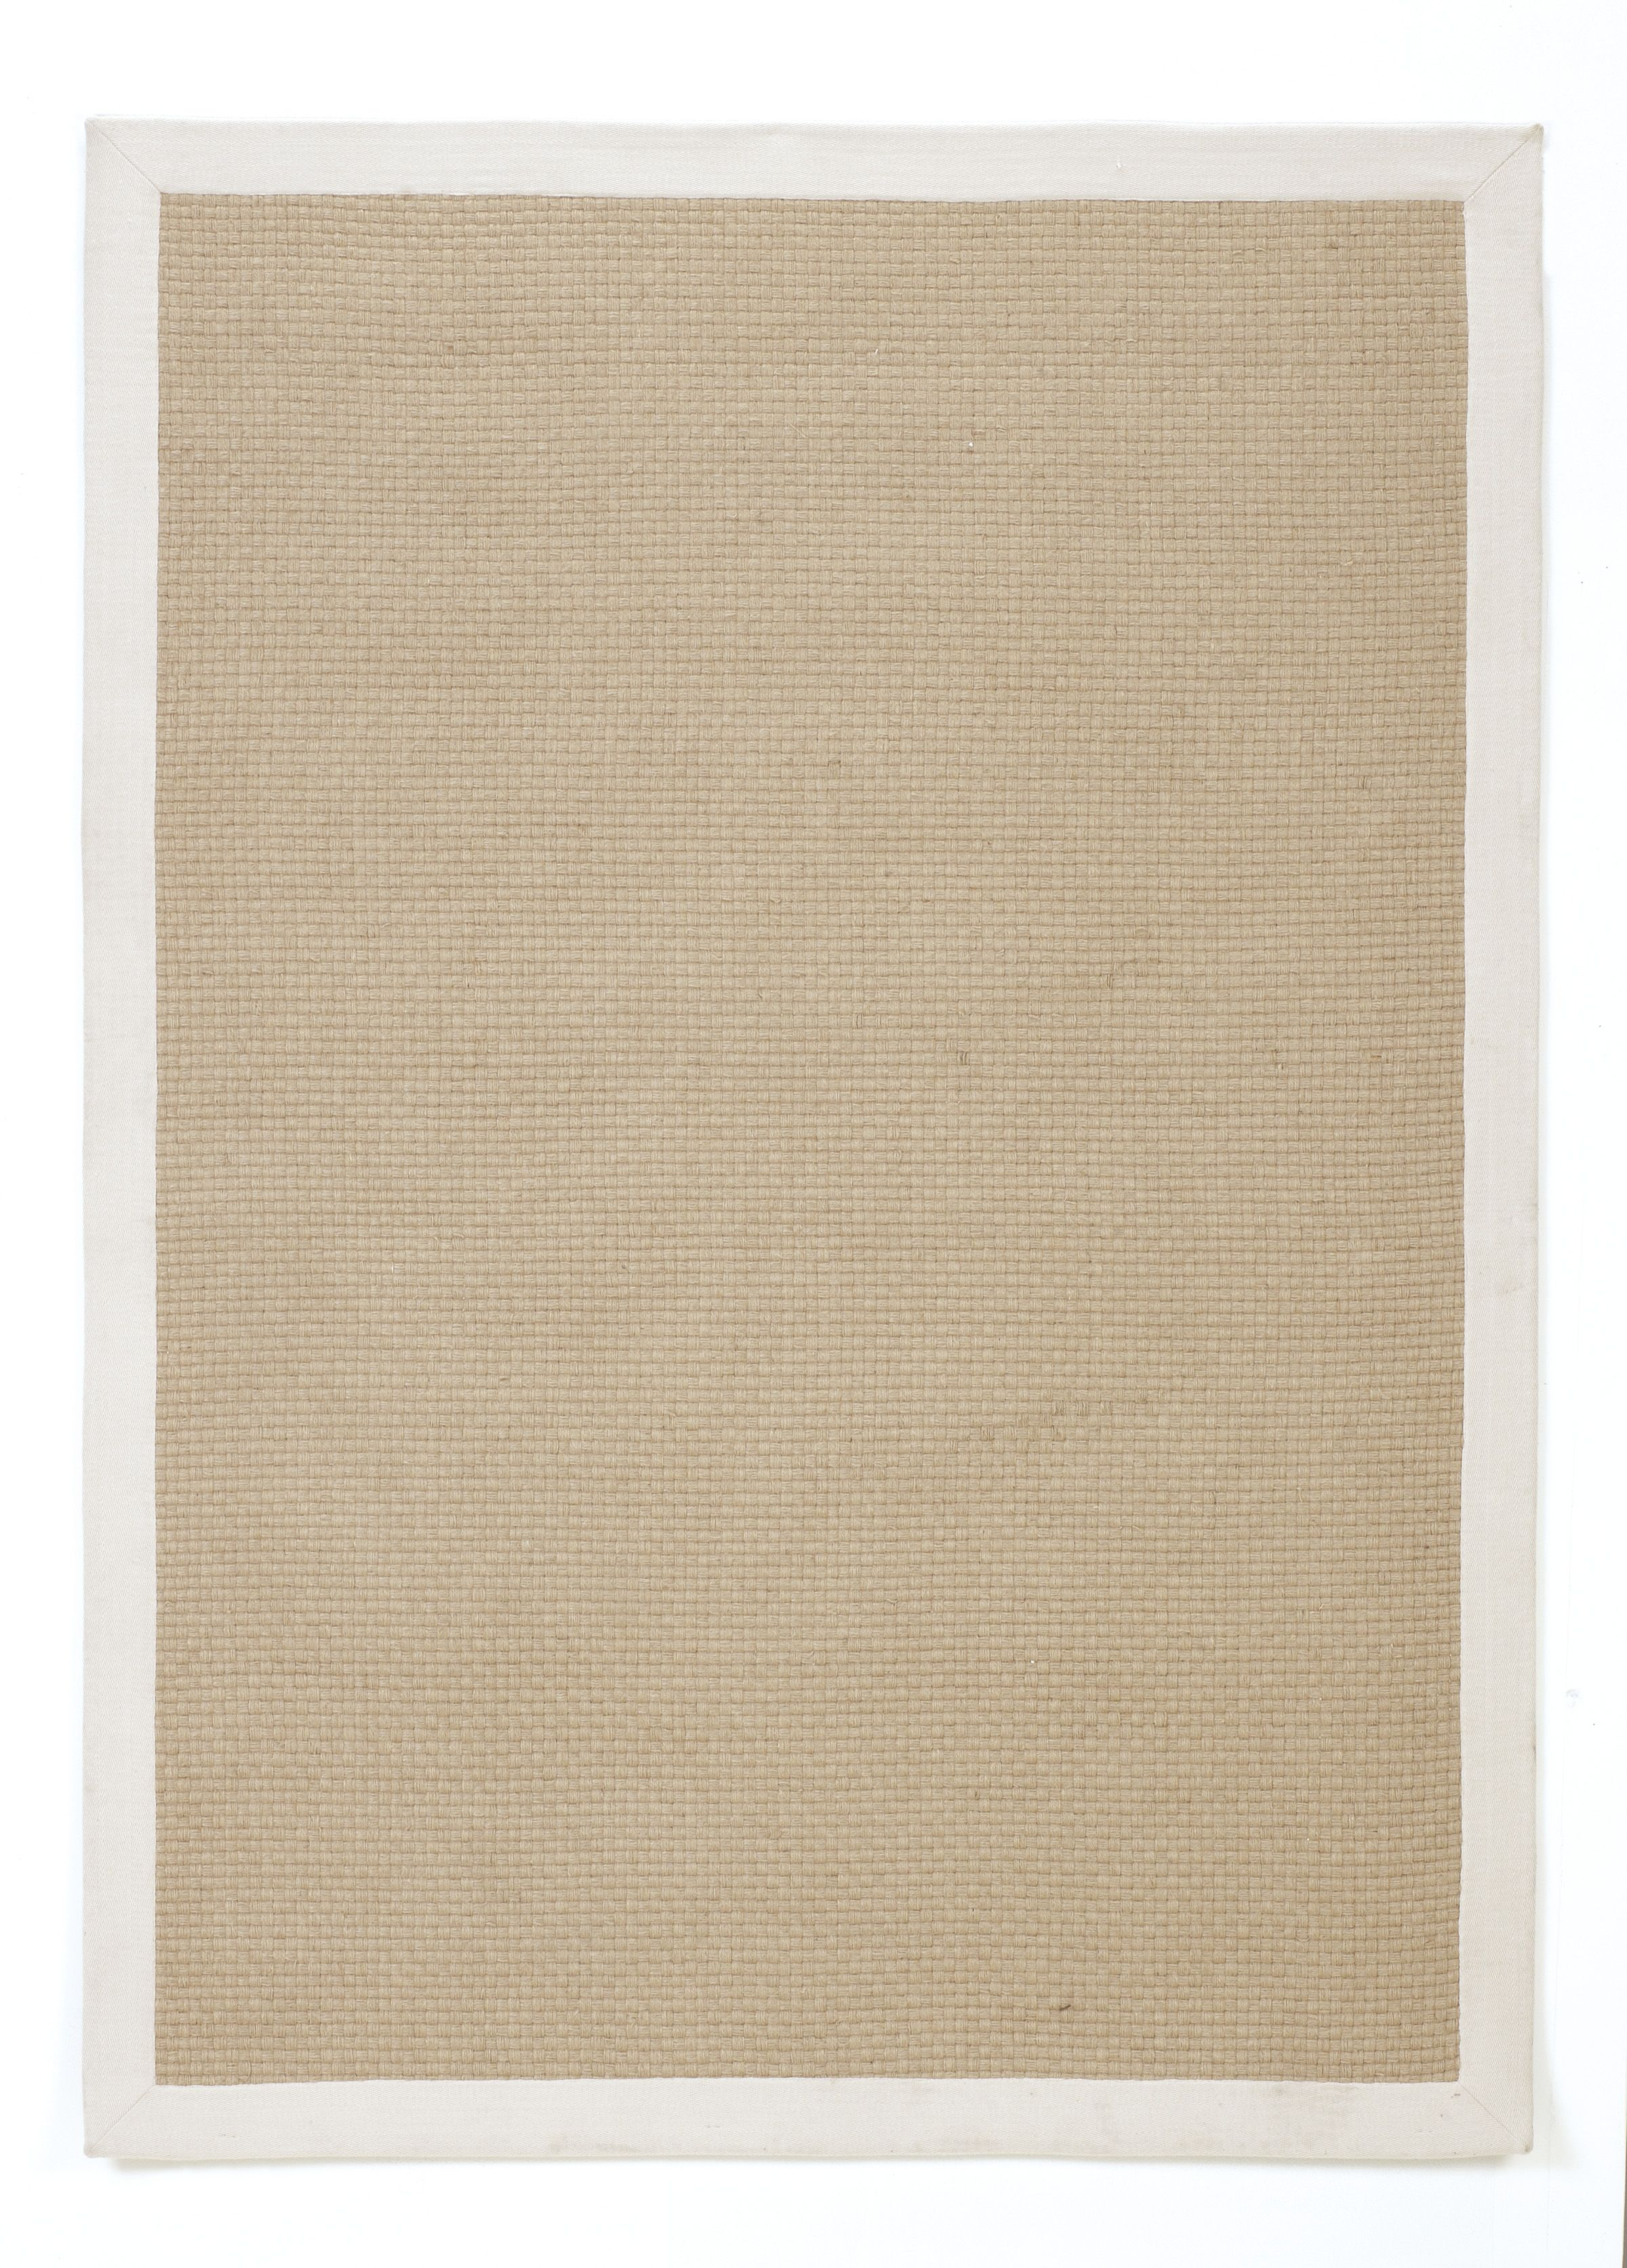 The Yuma Area Rug Matches Excellently With The Grayish